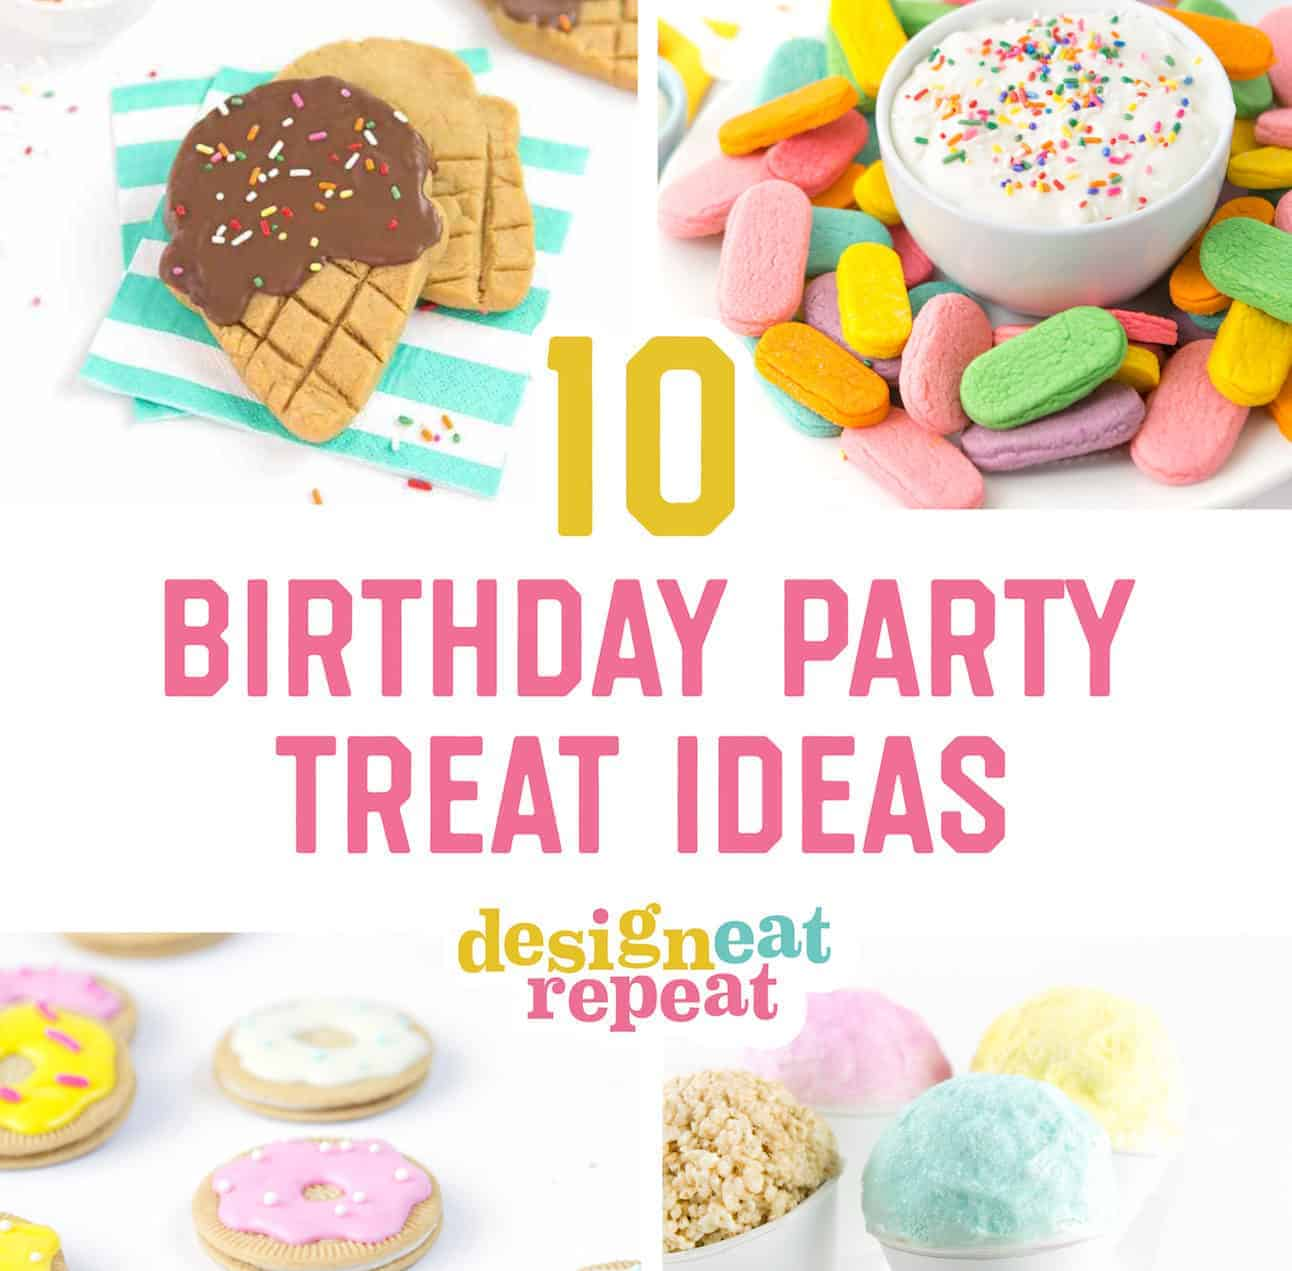 10 Cute & Easy Birthday Party Treats On A Budget